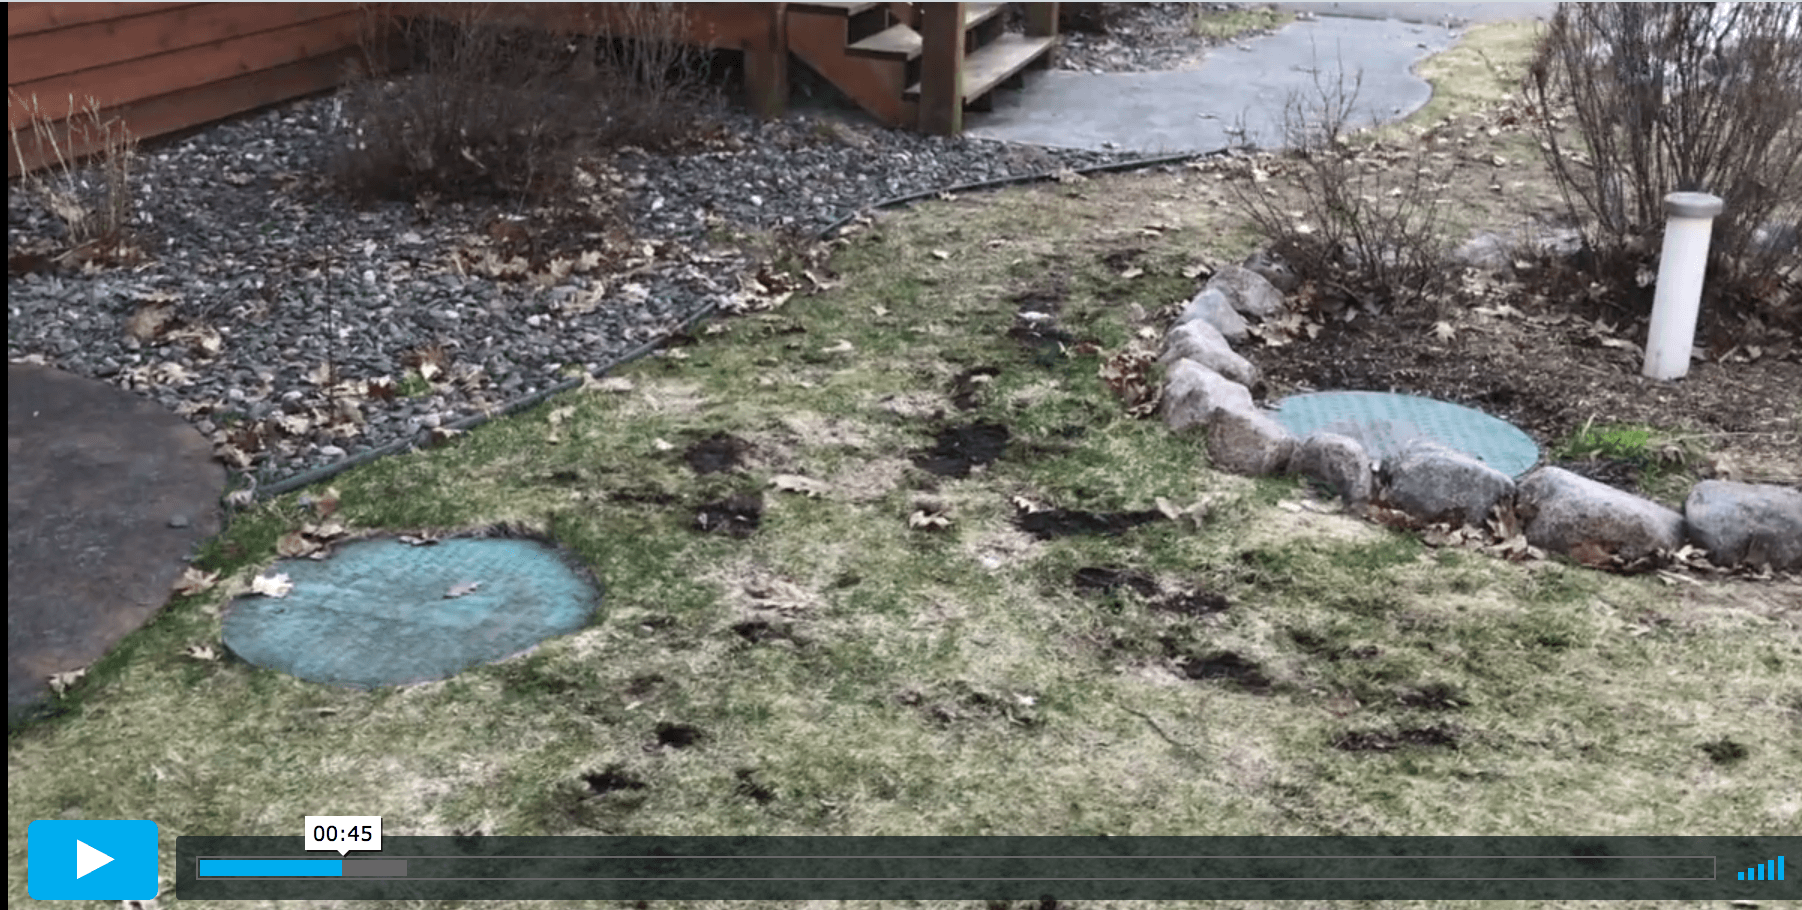 Septic Systems 101 by Jim Mulleady from Coldwell Banker Mulleady Realtors